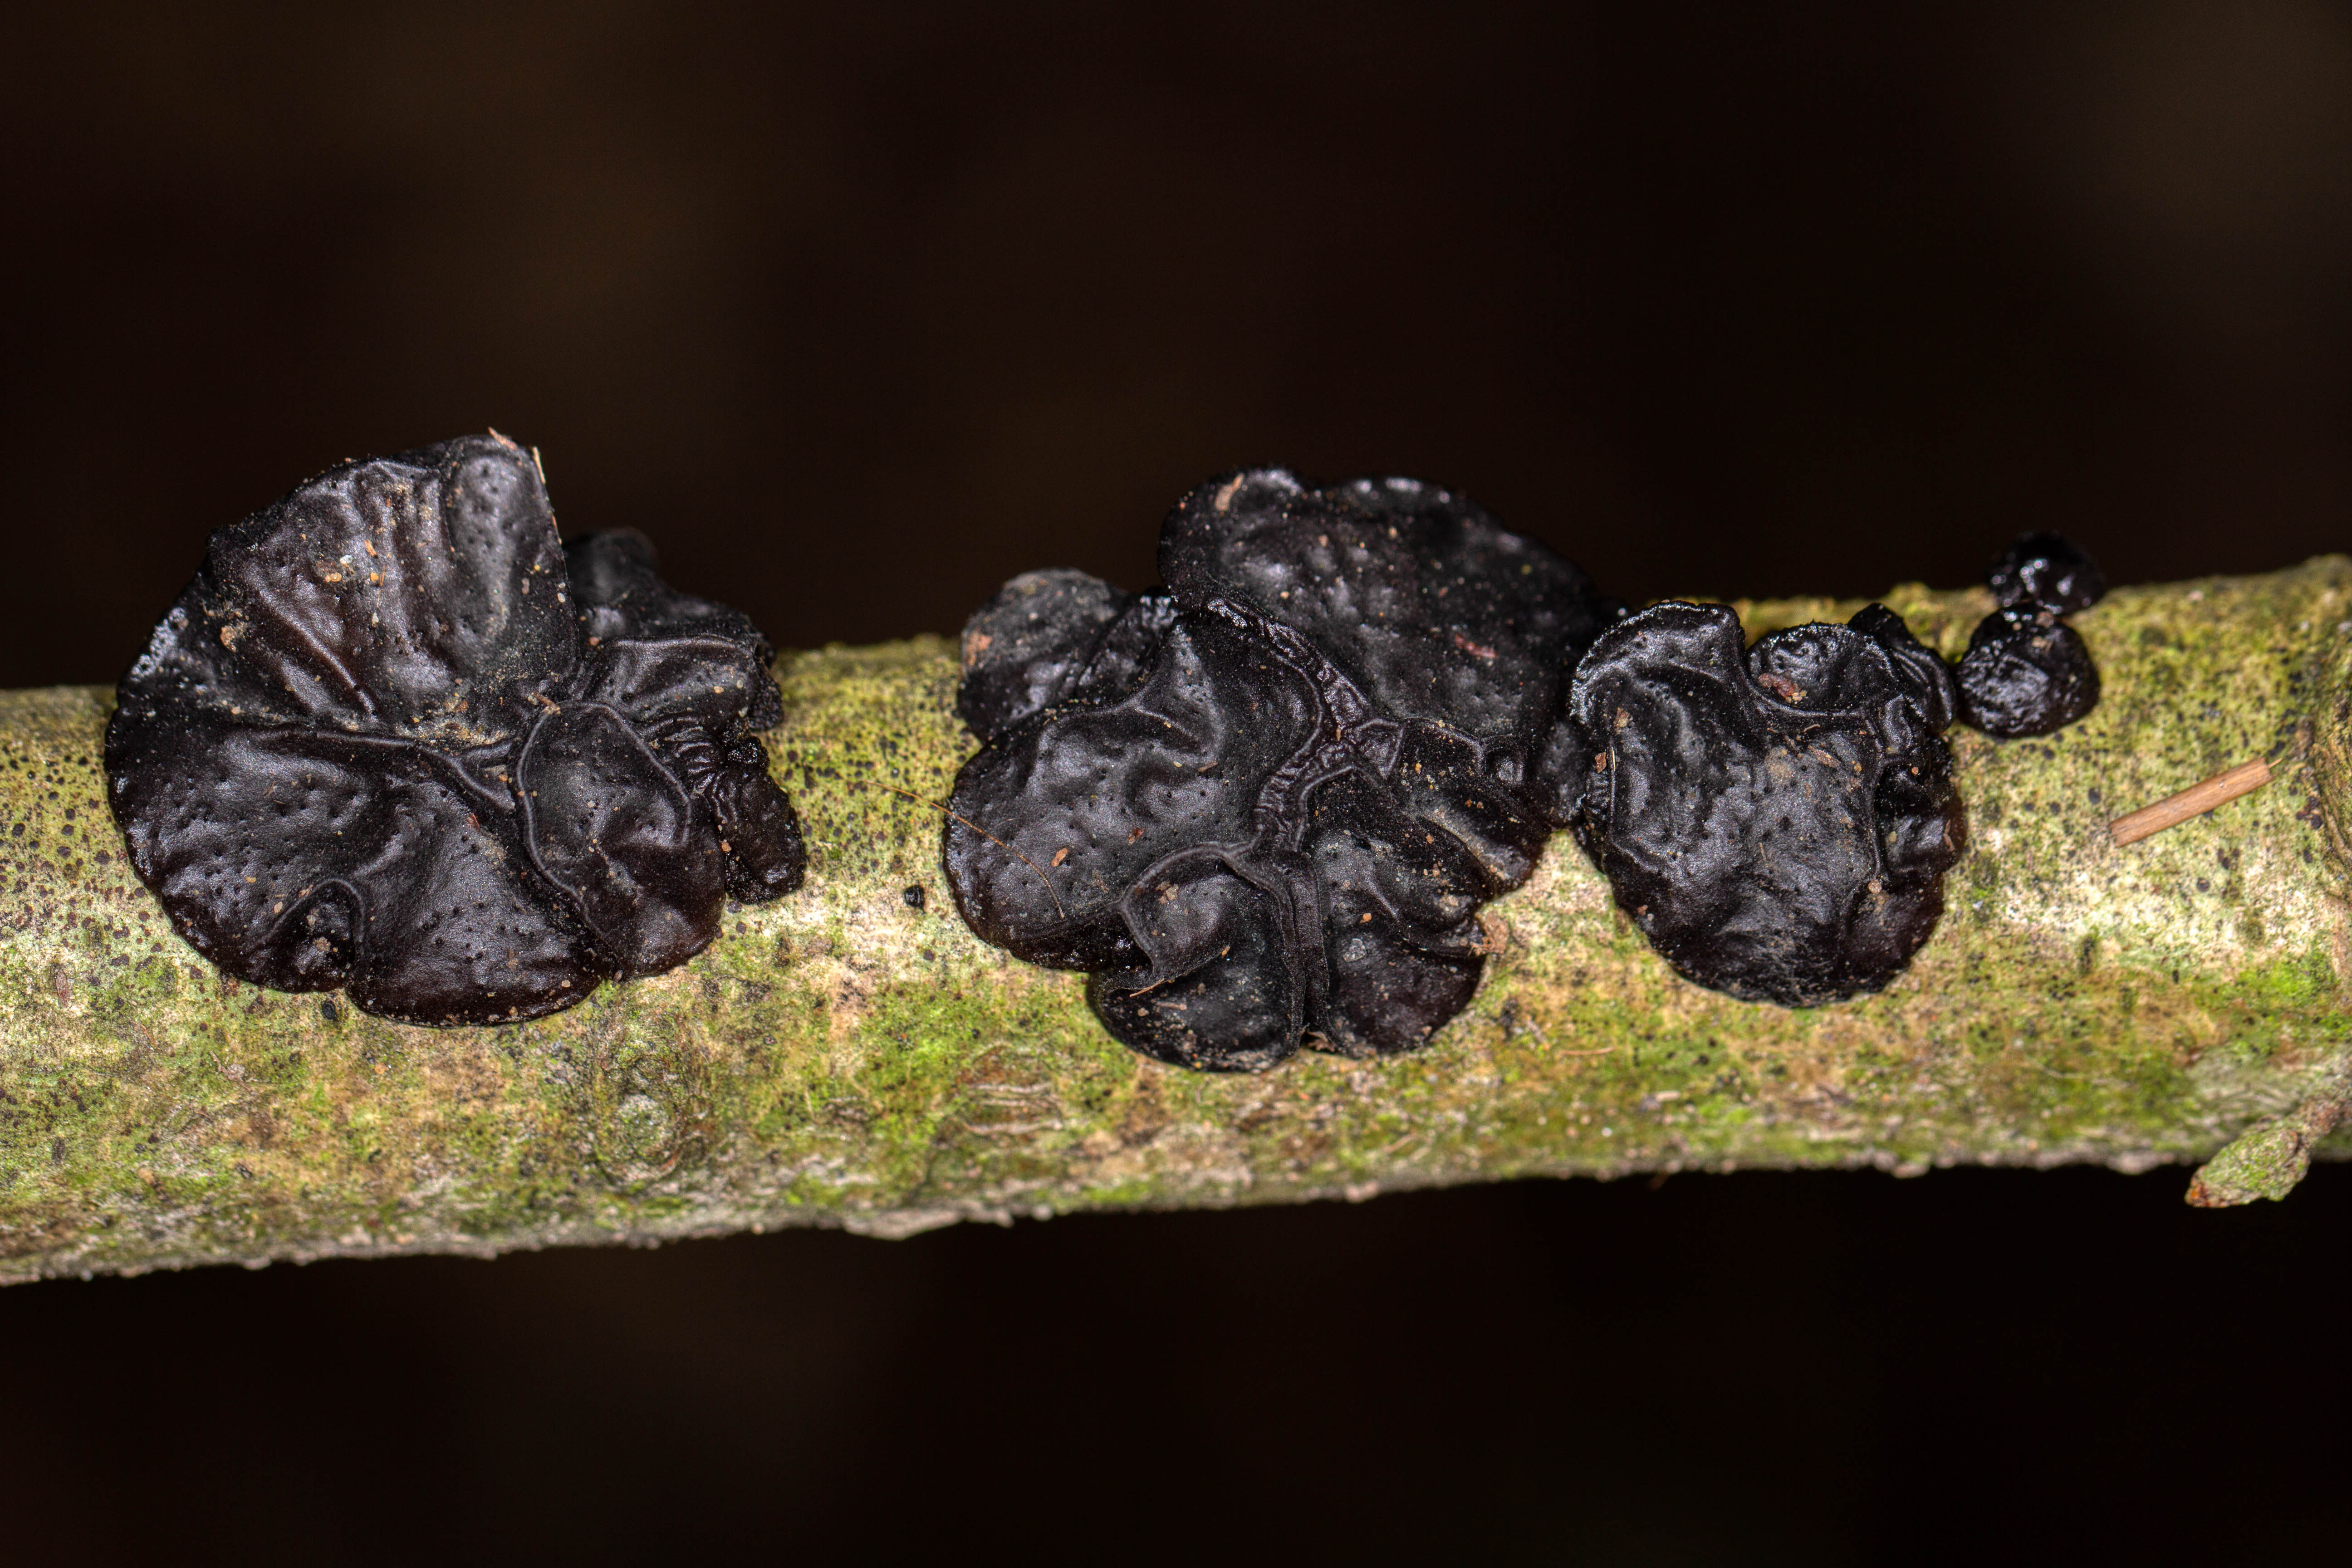 Possible Black Witches Butter - Exidia plana